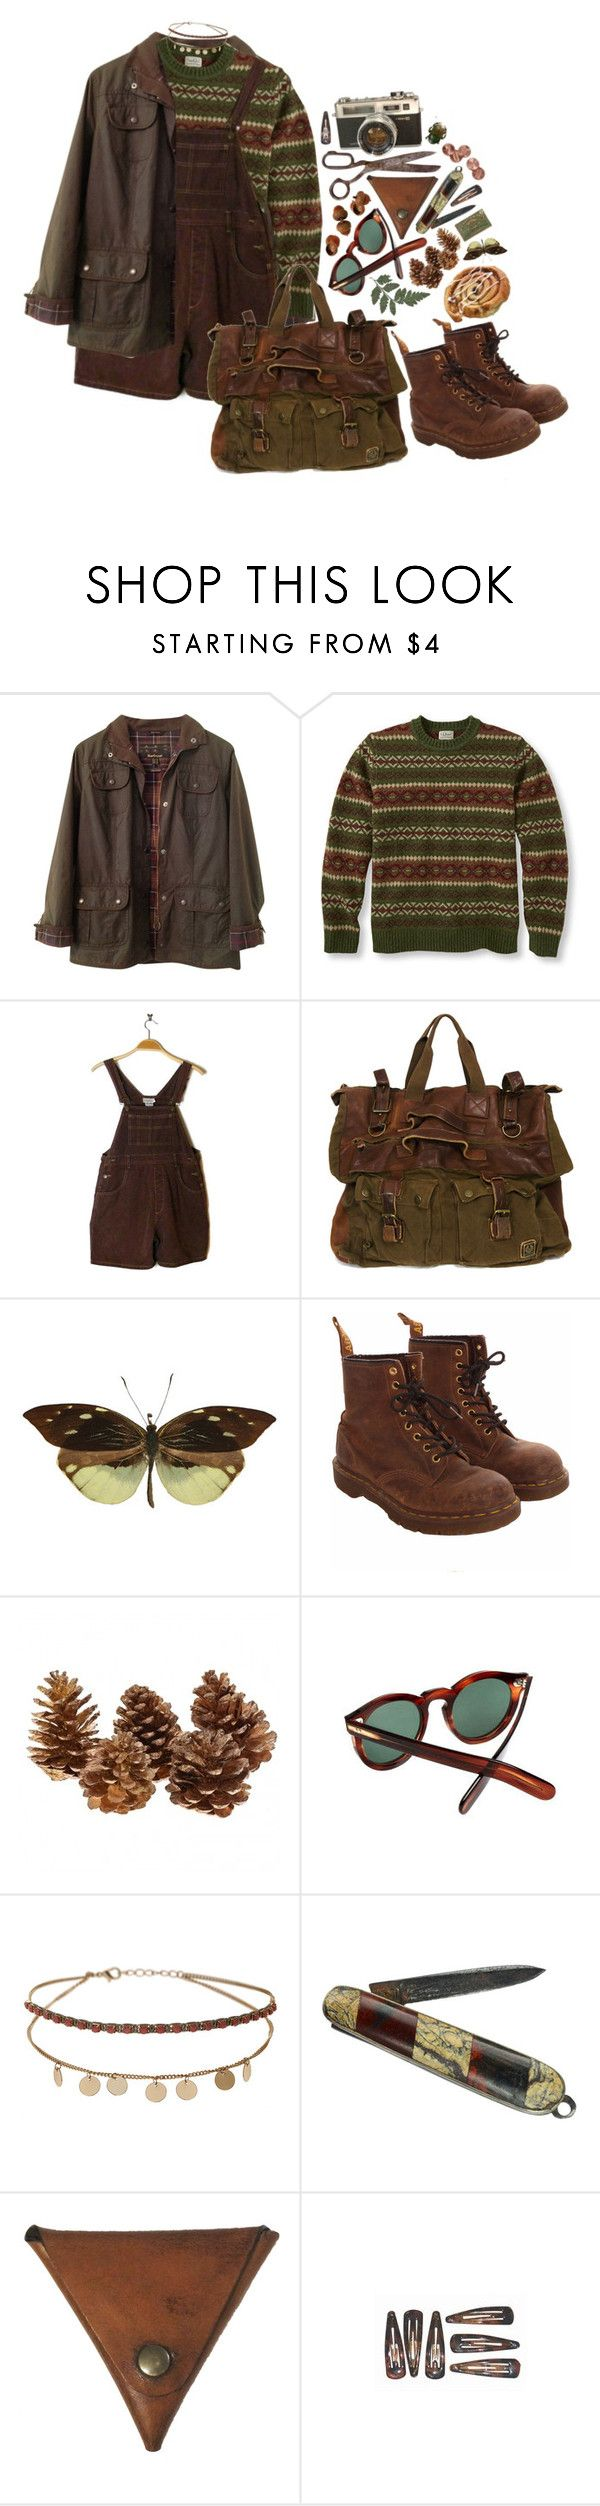 """#374"" by sappyholygirl ❤ liked on Polyvore featuring Barbour, Belstaff, Nemesis, Dr. Martens, Cutler and Gross, Miss Selfridge and Palila"